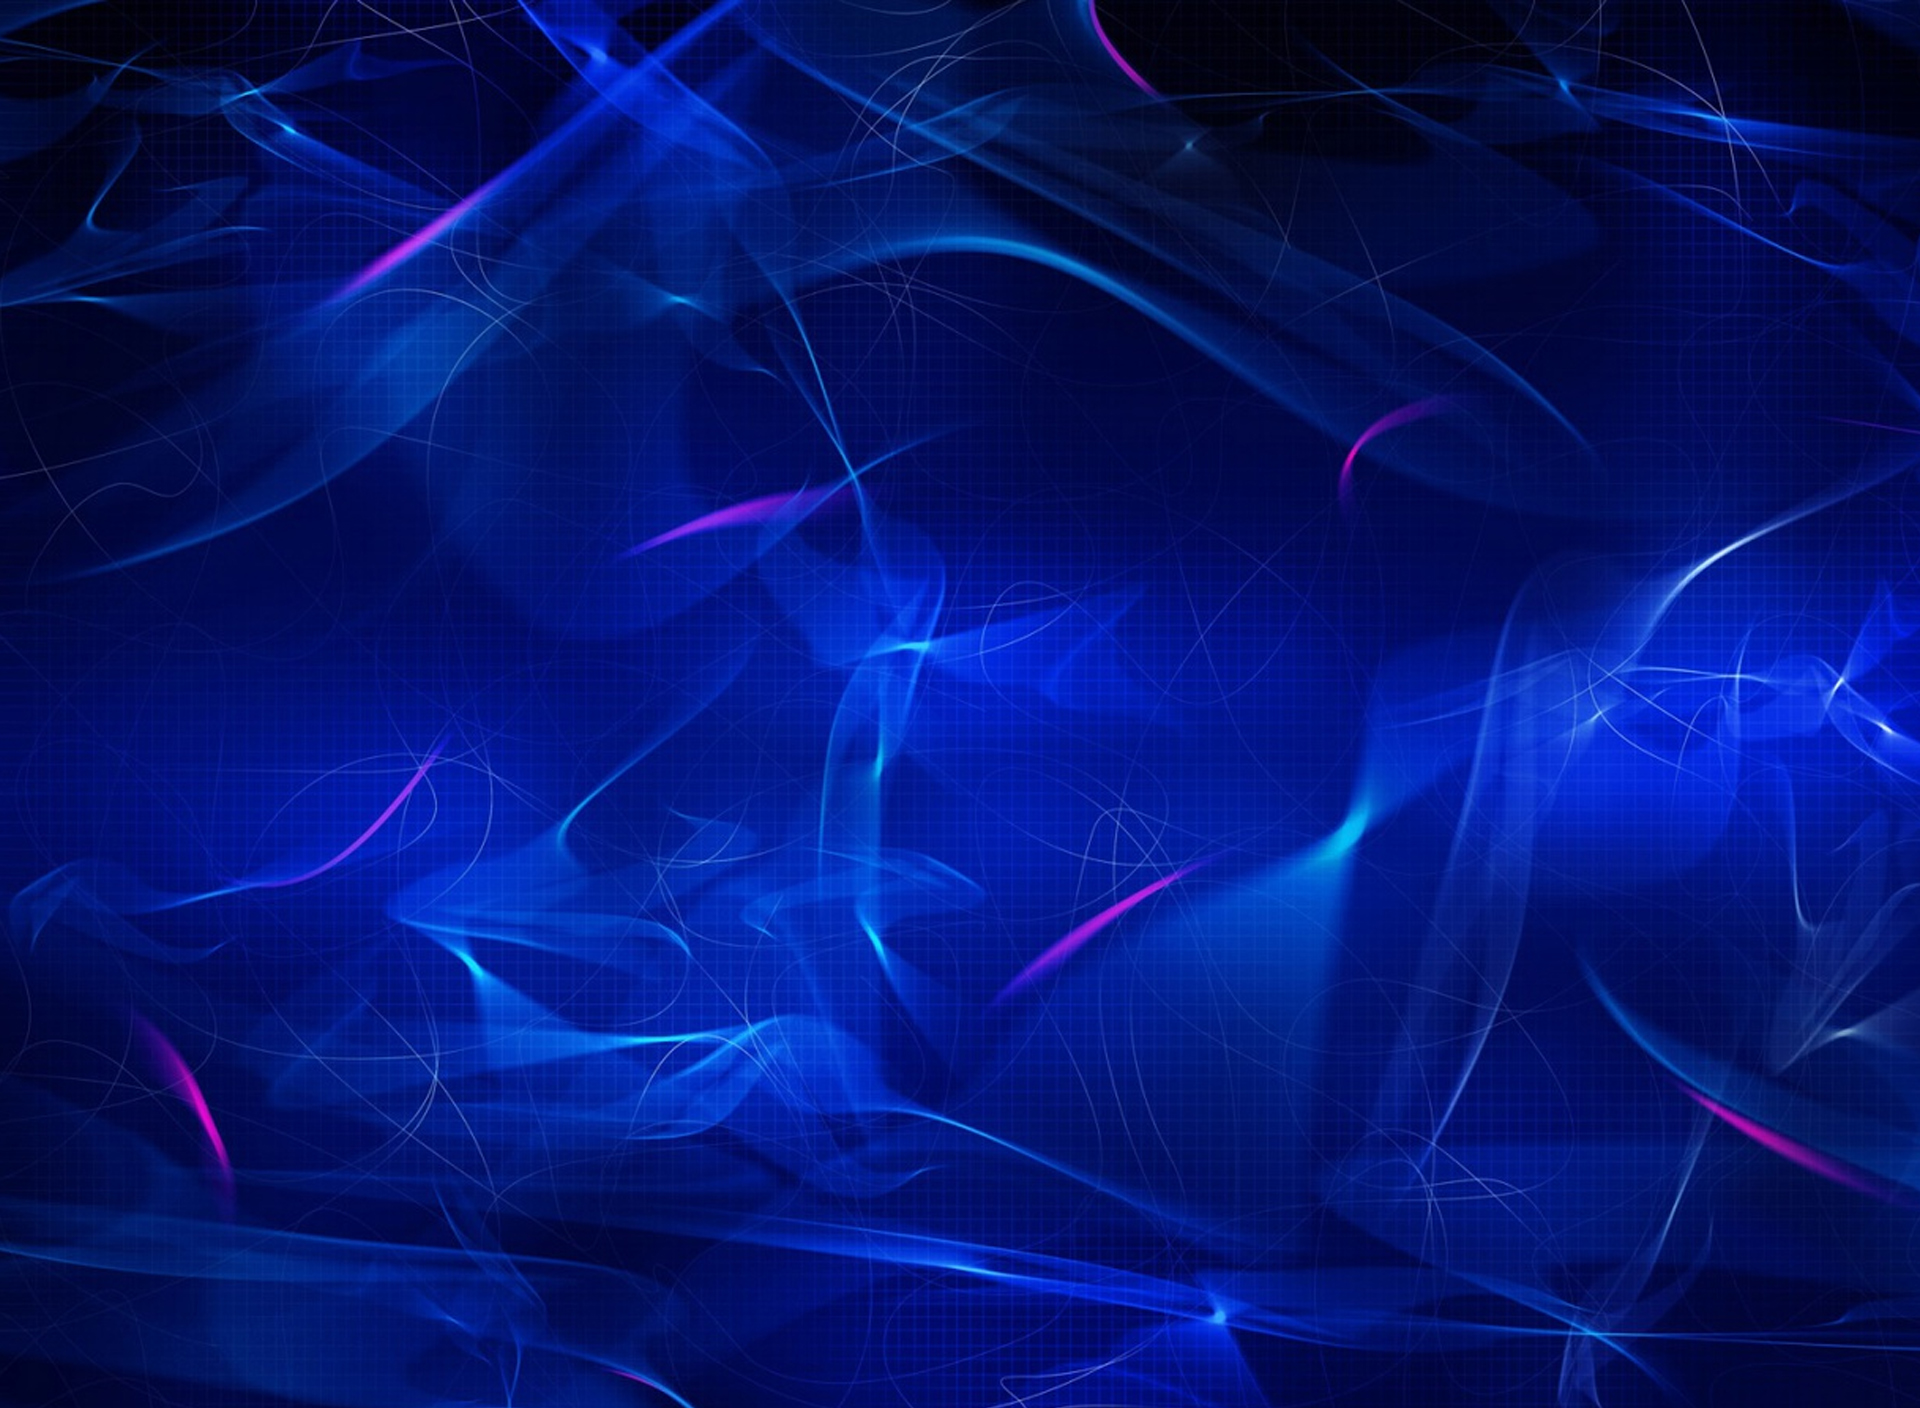 abstract blue computer wallpaper hd 64292